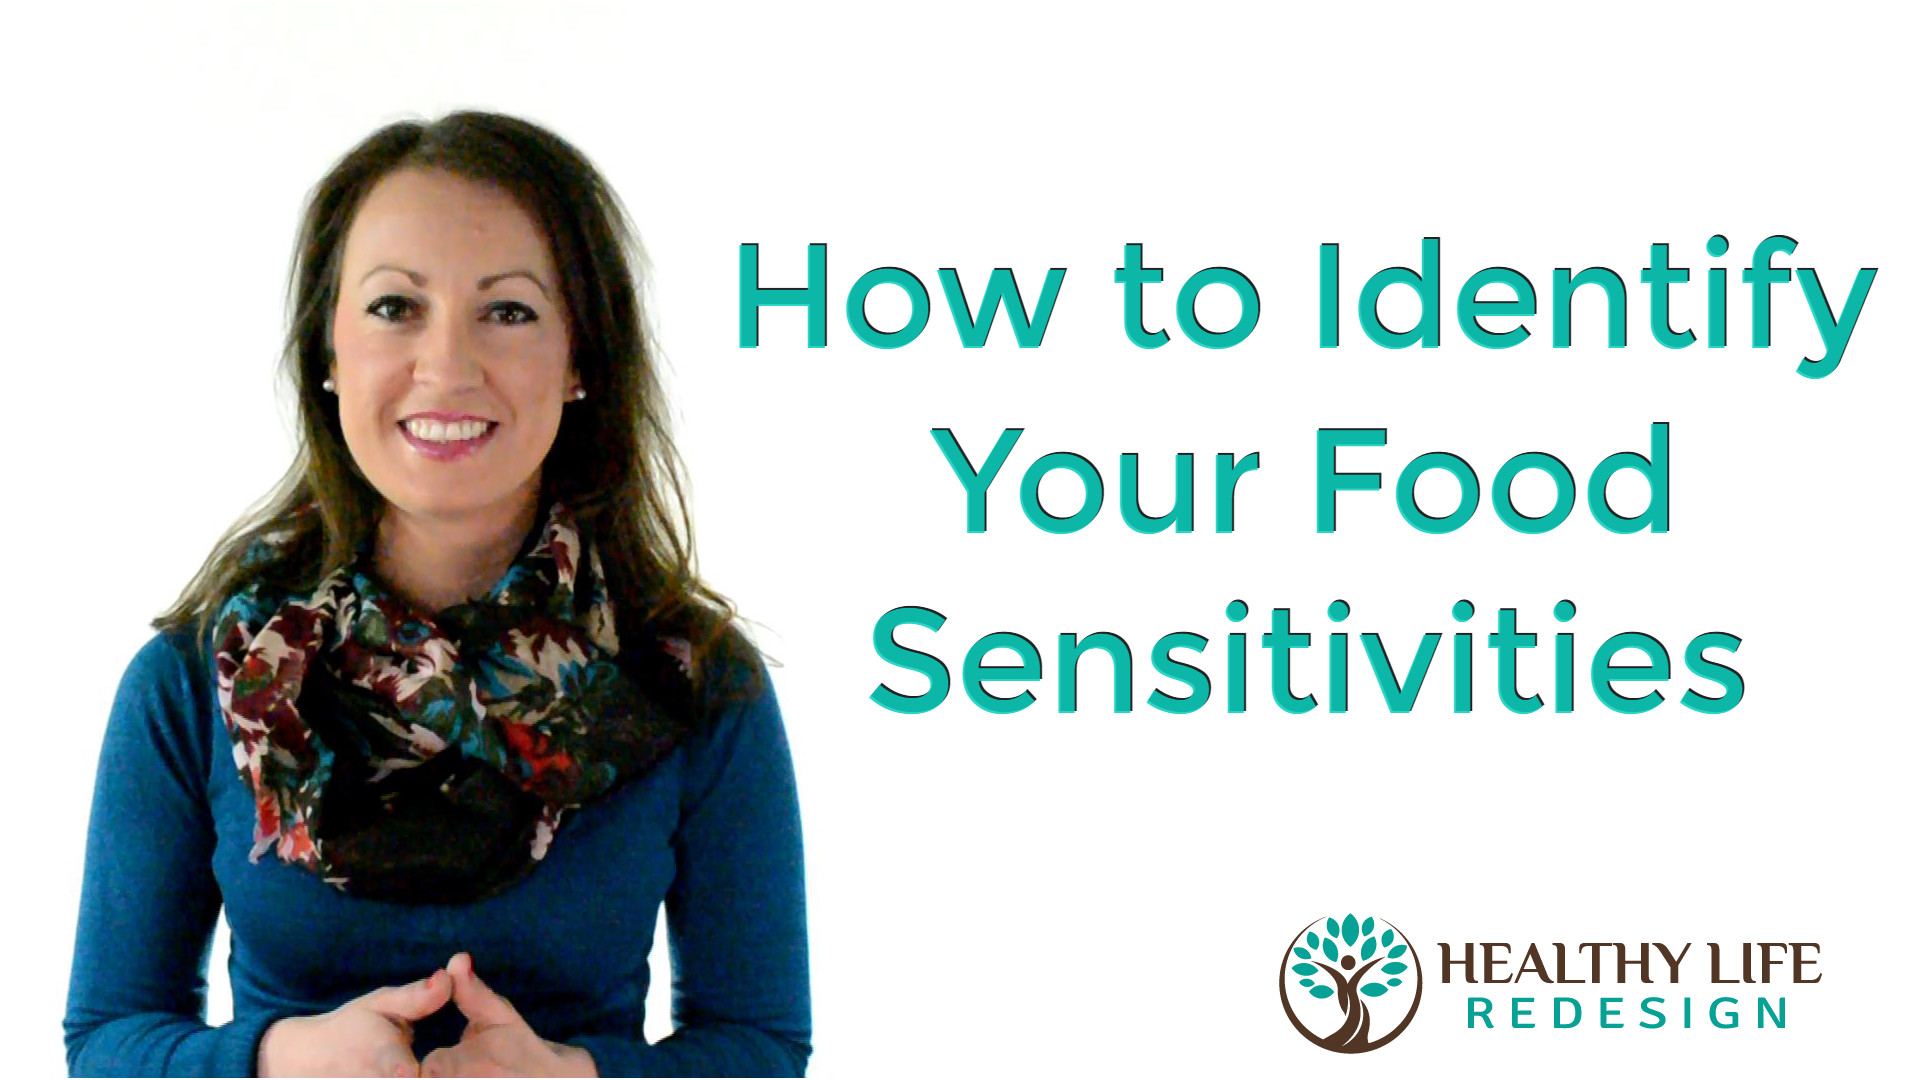 How to identify your food sensitivities